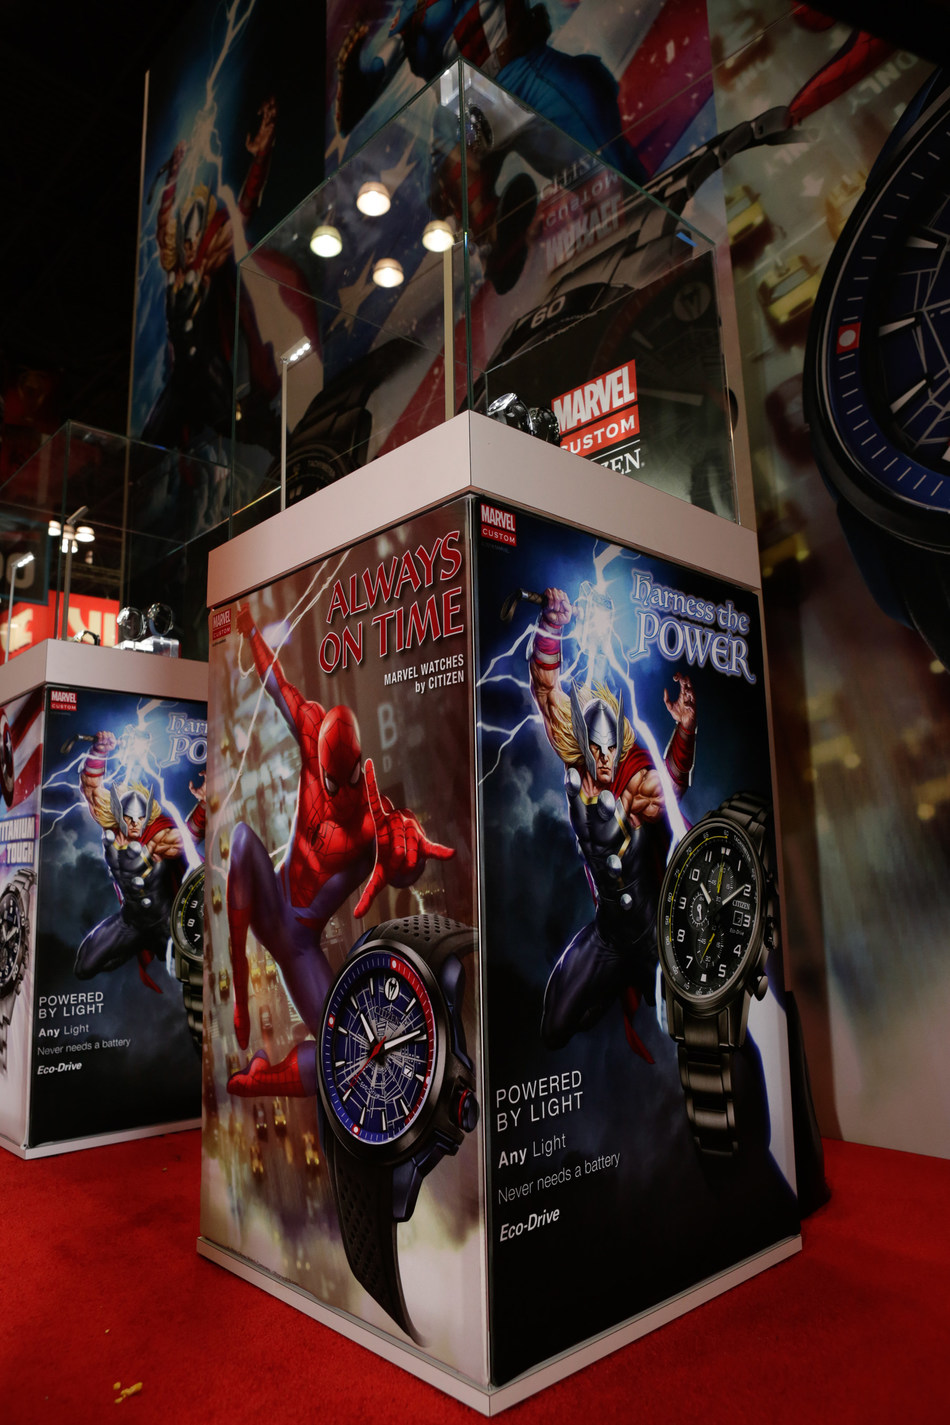 Citizen unveils brand new Marvel Heroes inspired collection at New York Comic Con, available Spring 2019.